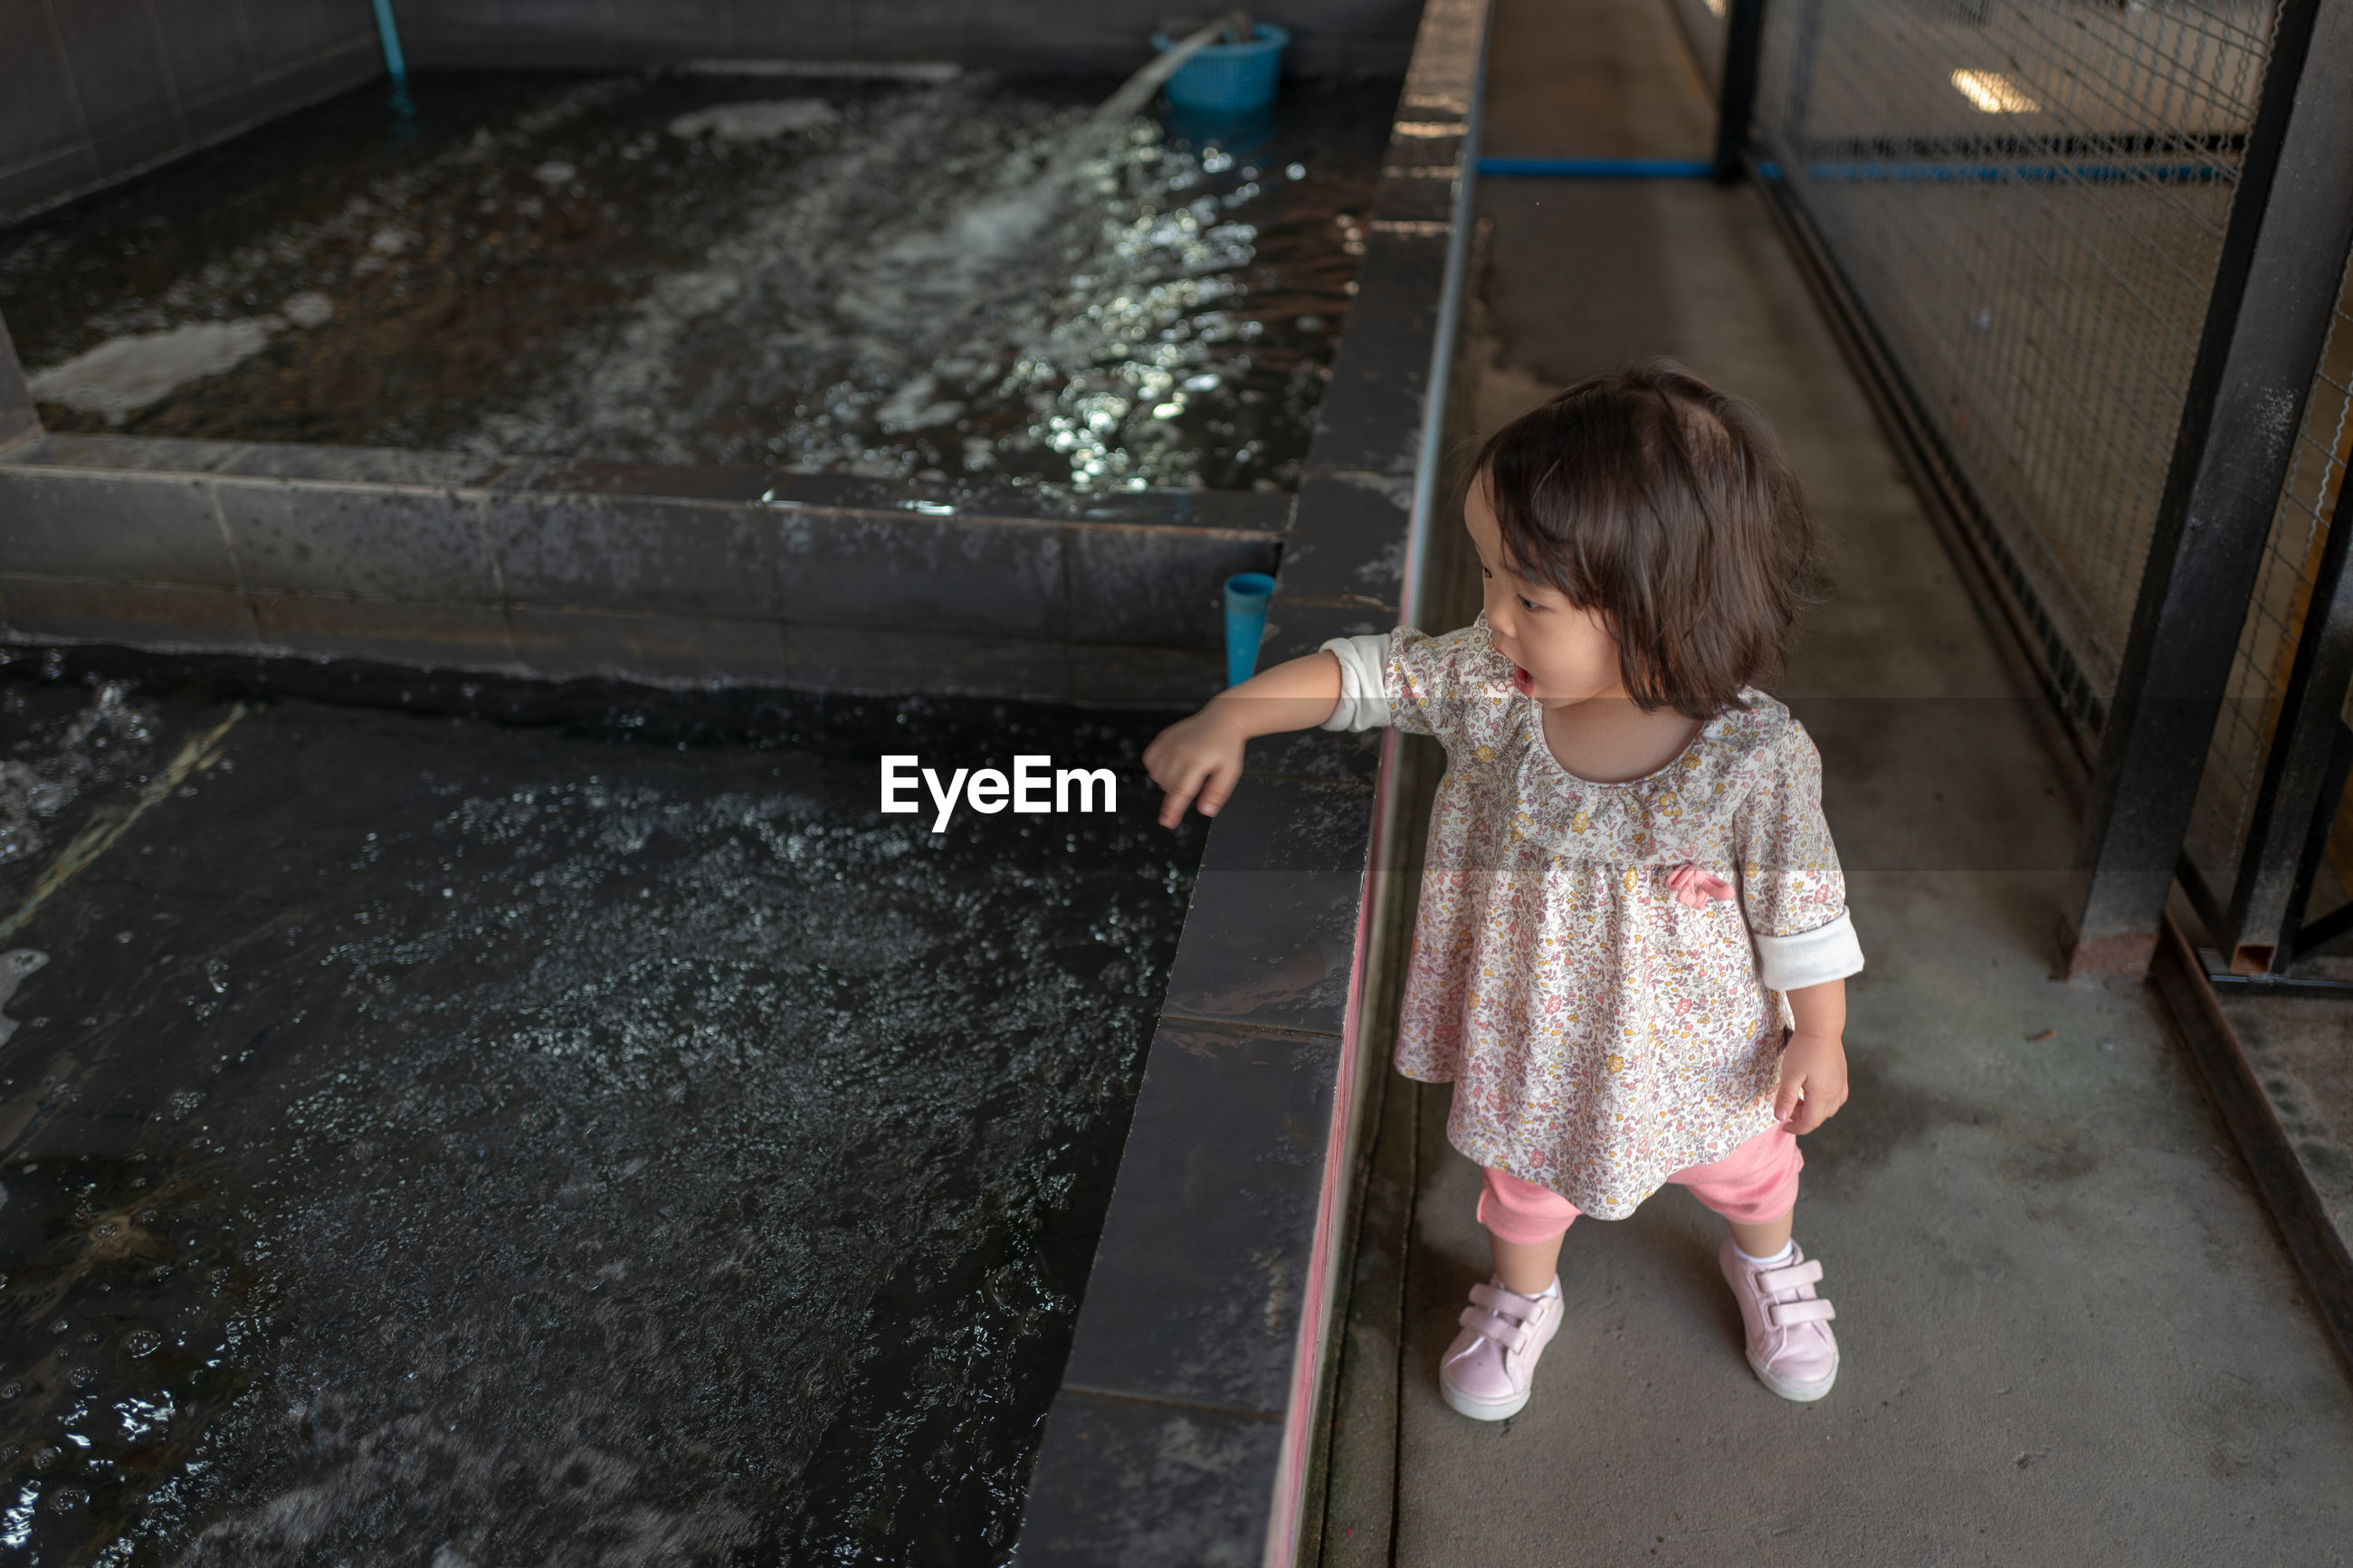 High angle view of cute baby girl pointing at artificial pond